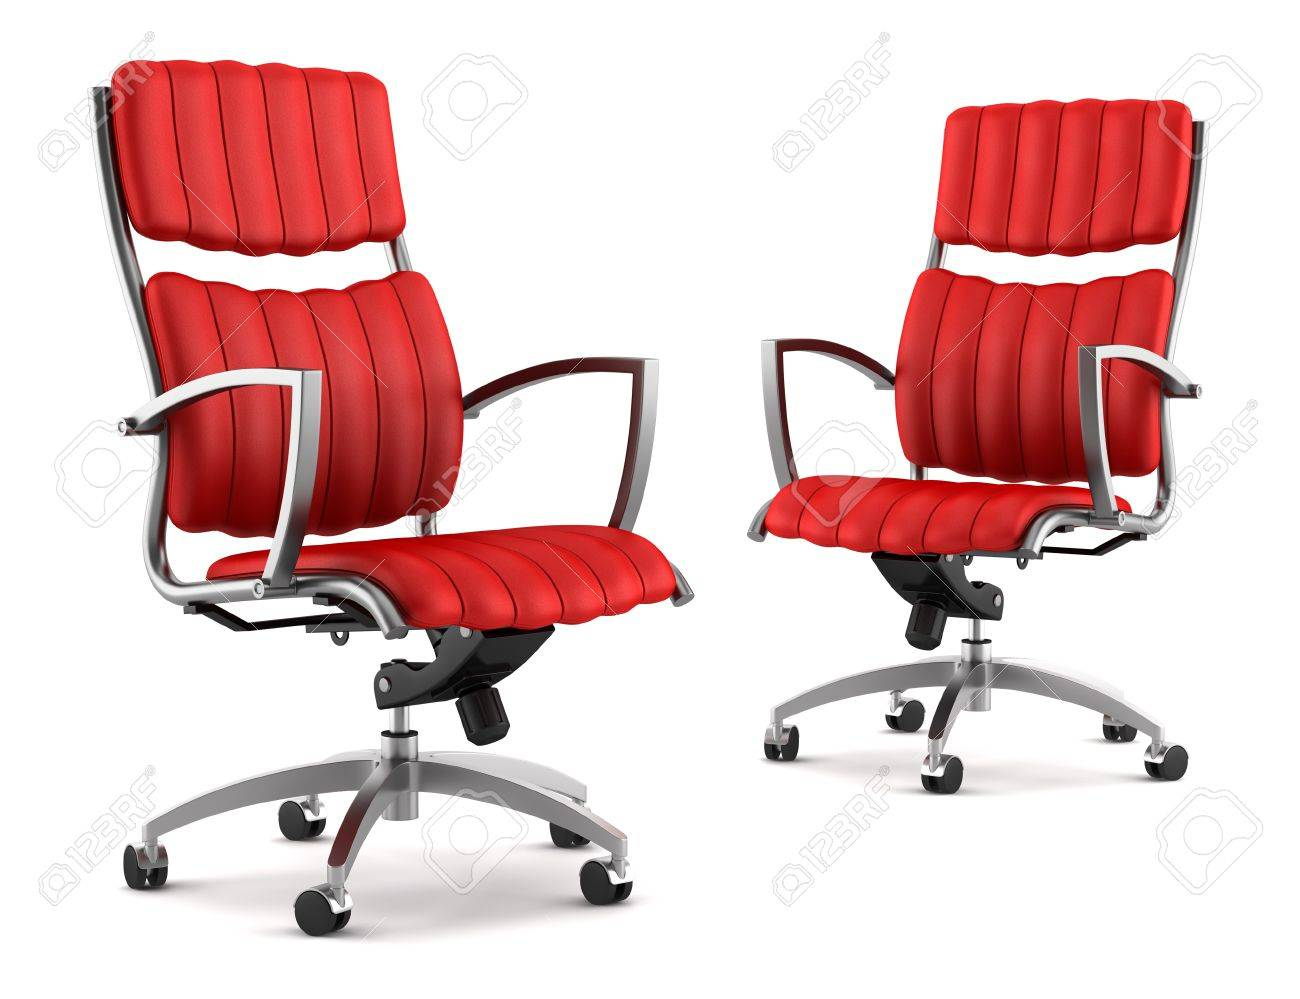 Two Modern Red Office Chairs Isolated On White Background Stock Photo